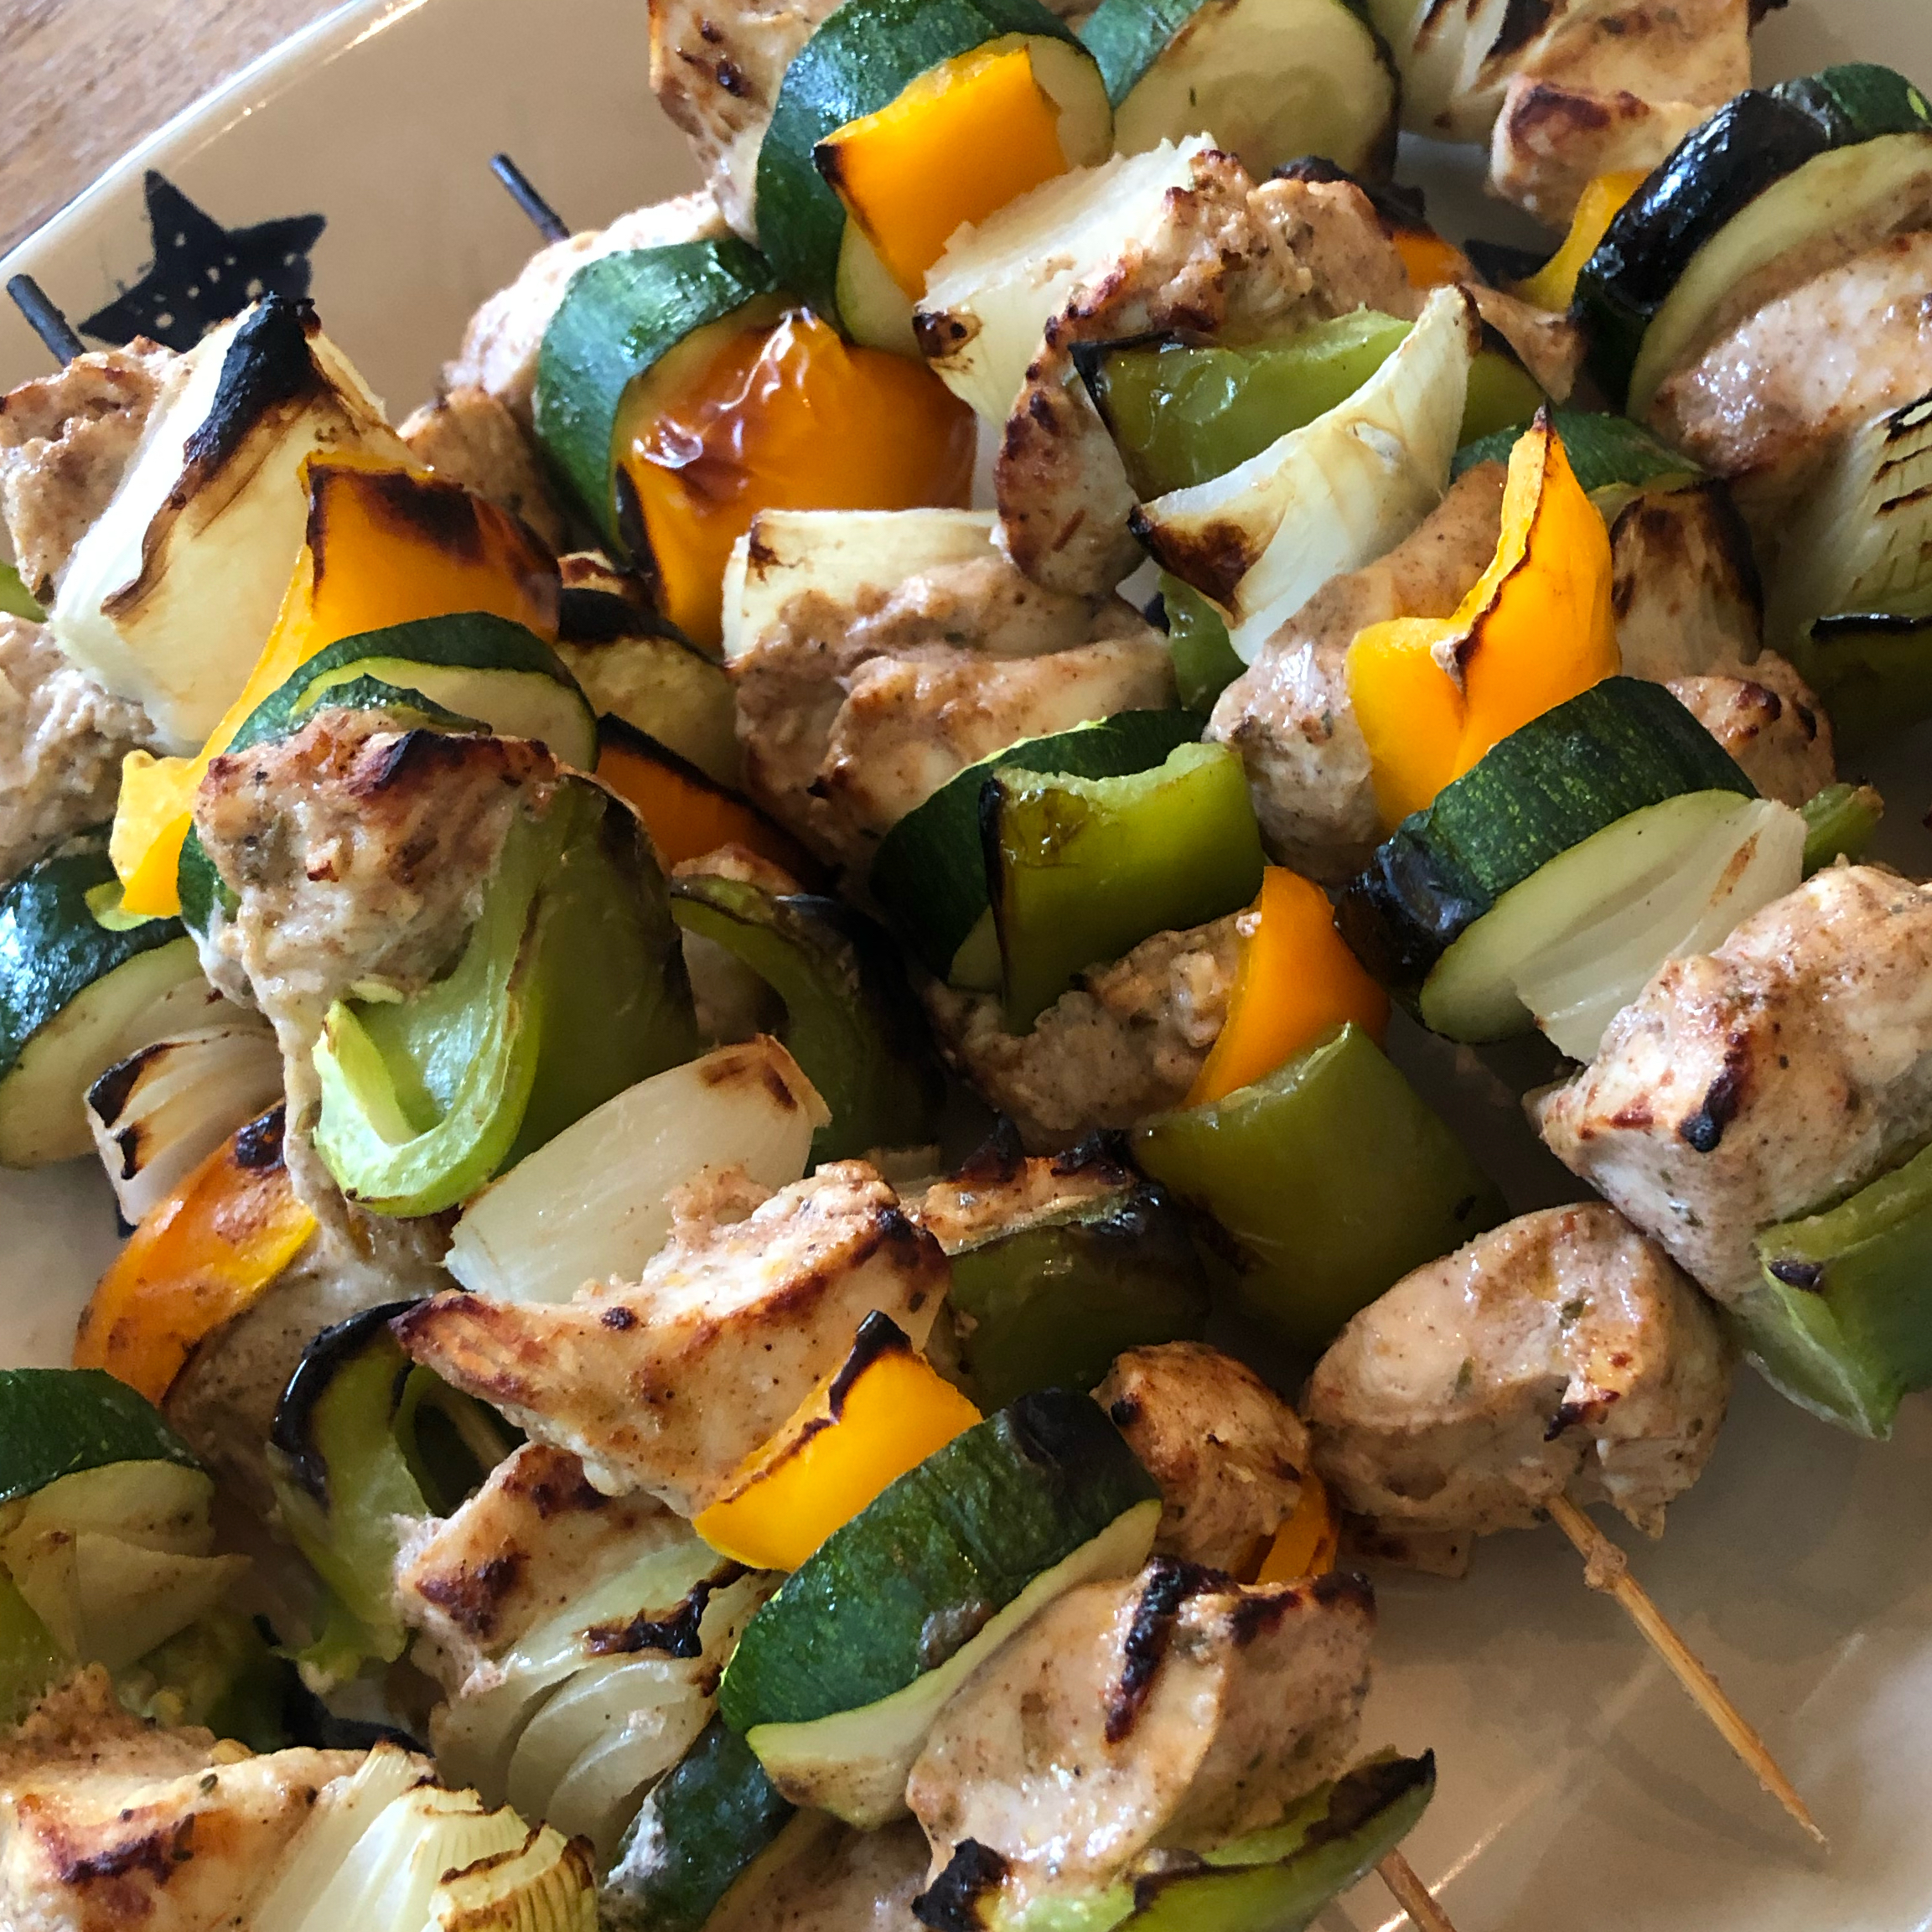 Shish Tawook Grilled Chicken Hungrymom13